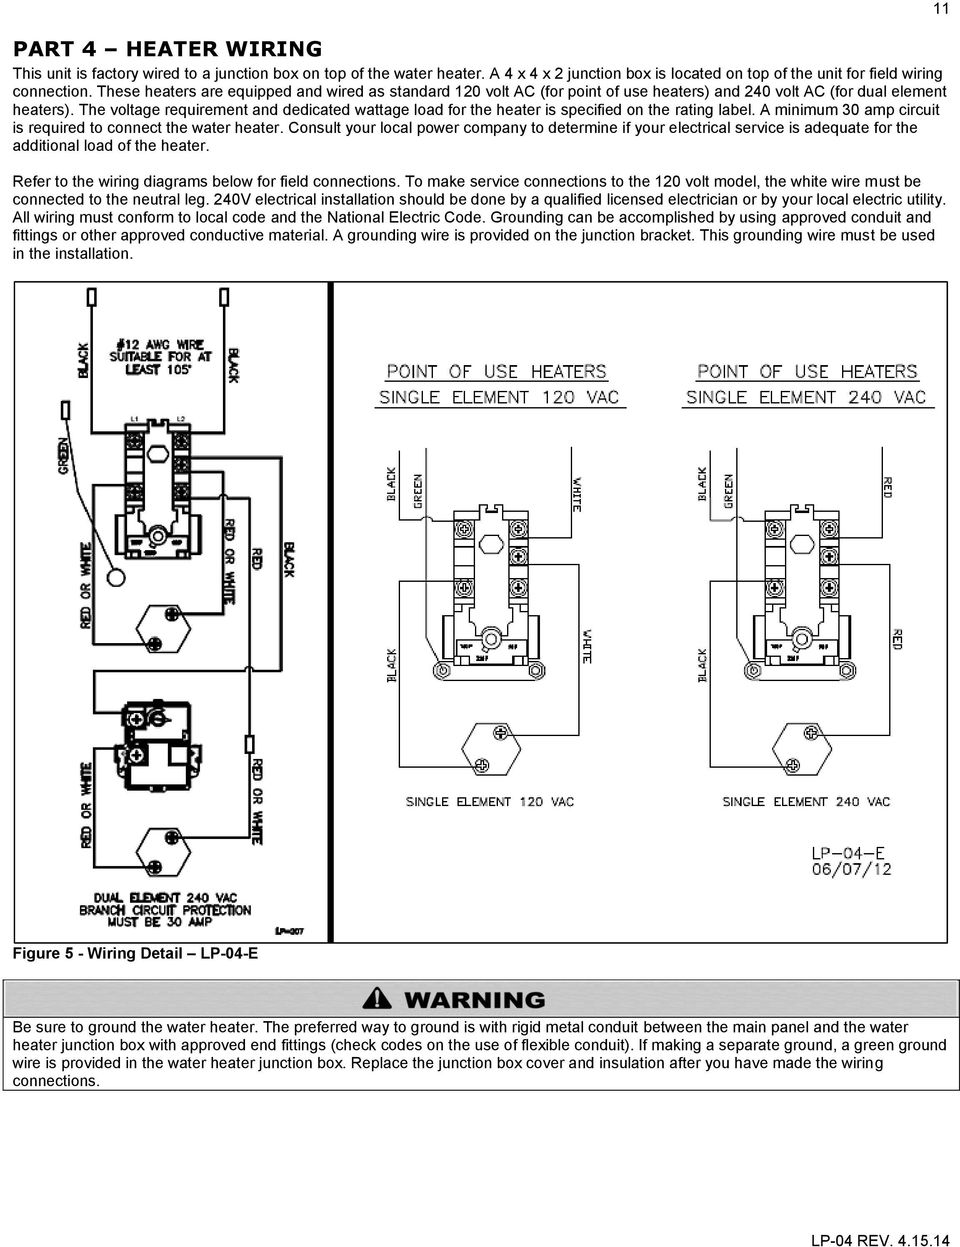 Reliance Dual Element Water Replace Thermostat Heater Wiring Diagram from docplayer.net